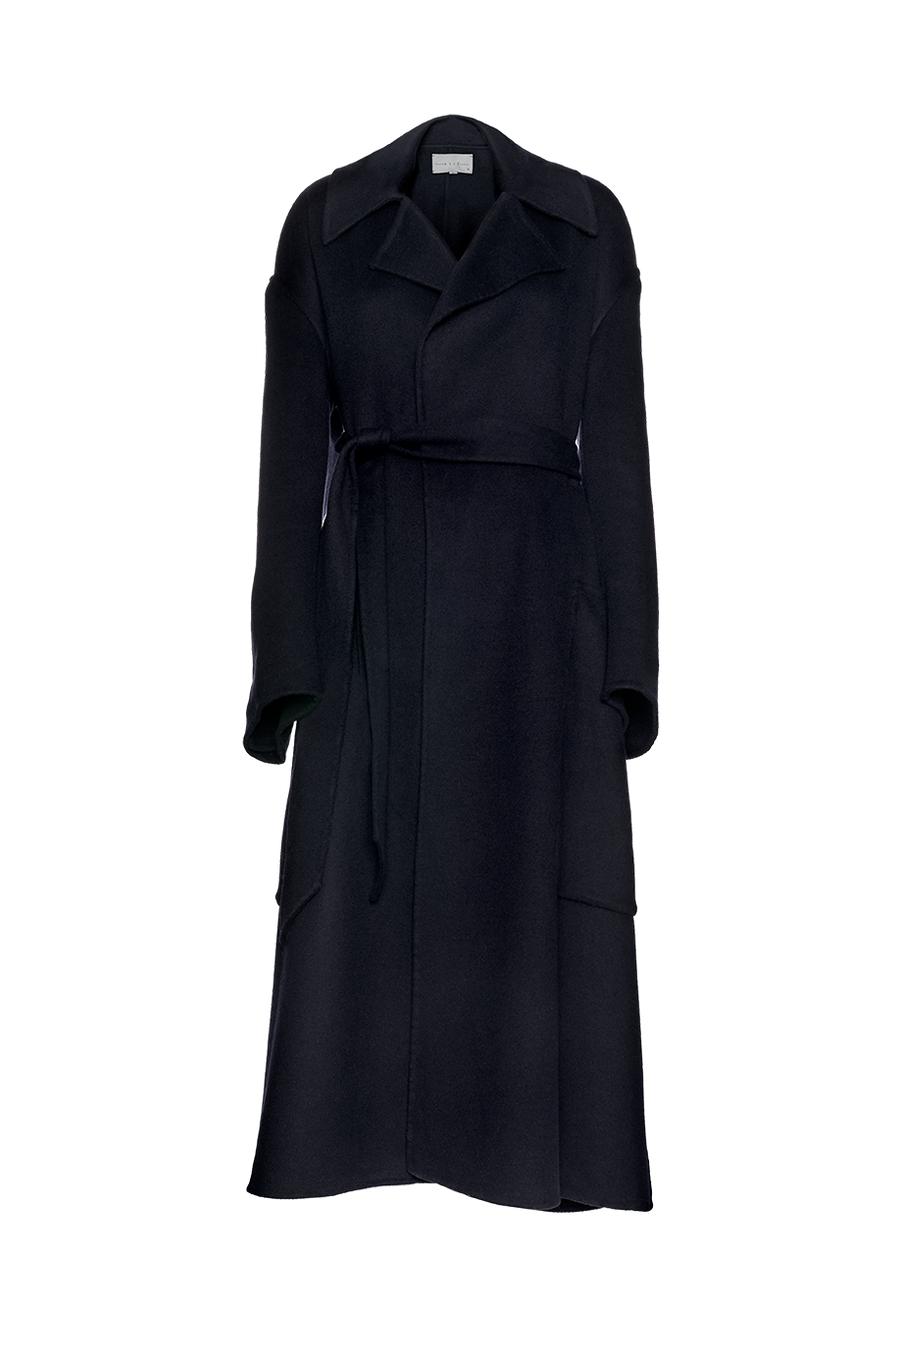 THE STELLA DOUBLE FACE CASHMERE COAT